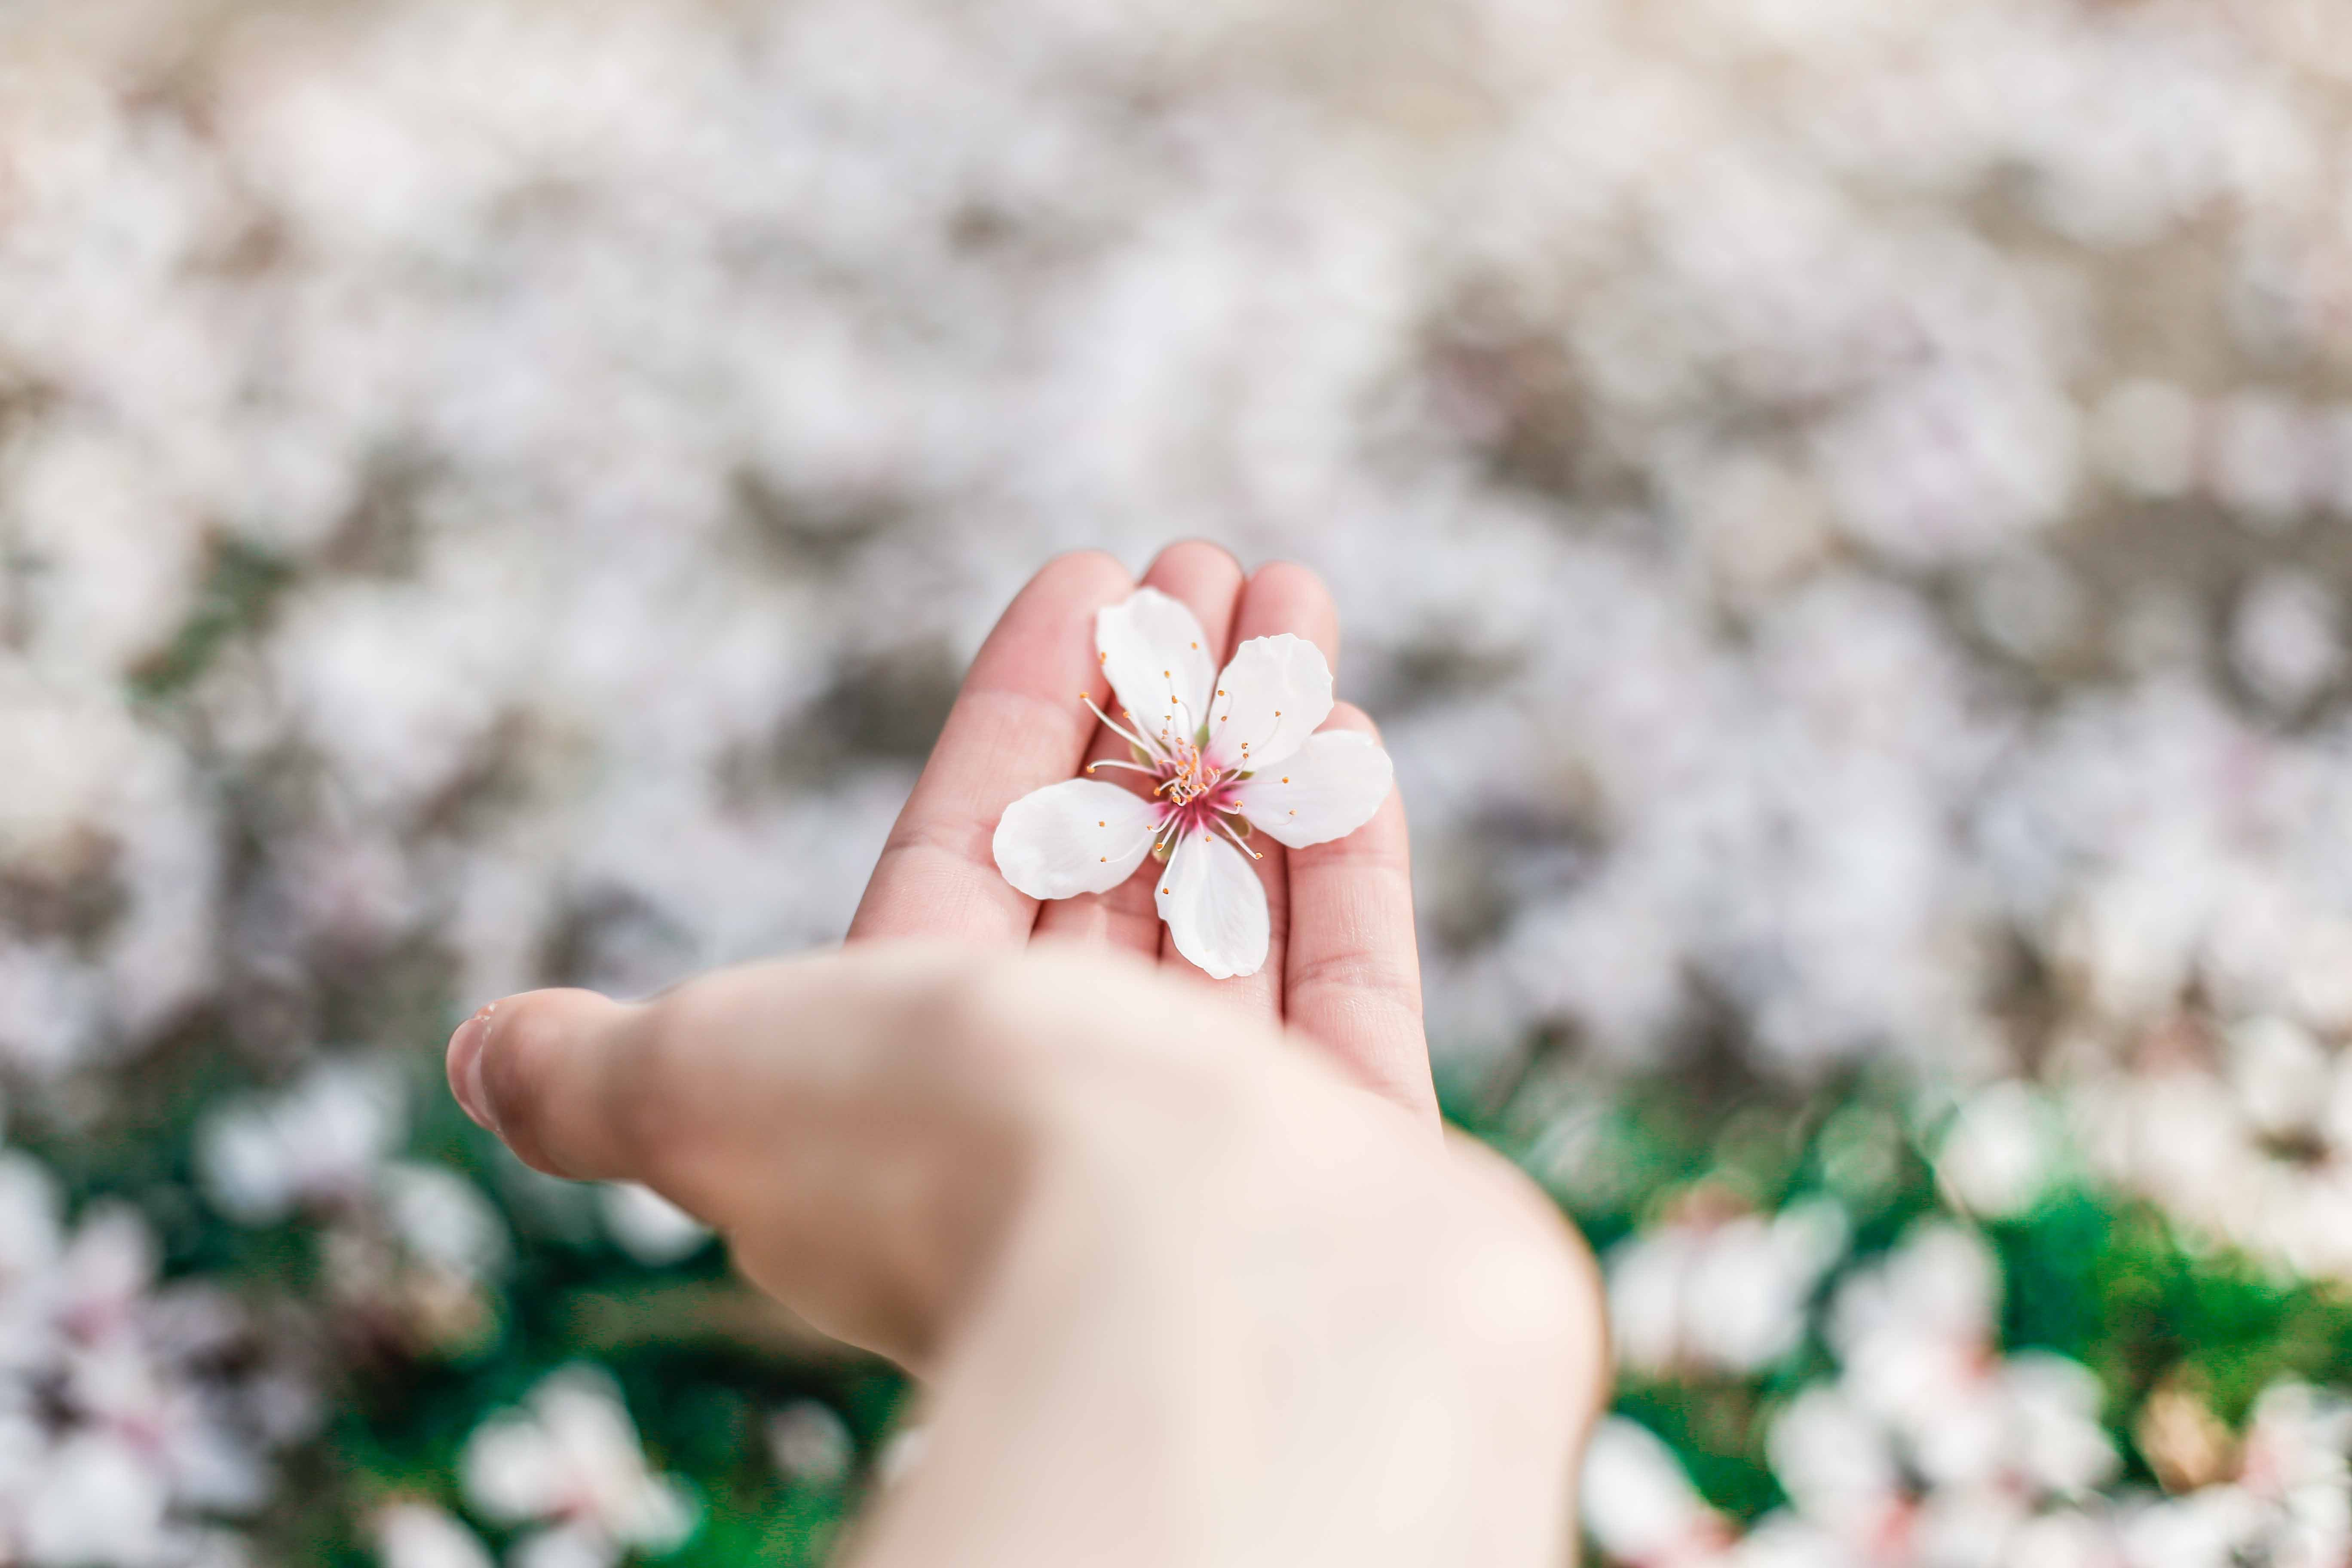 Hand holding cherry blossom with blossom on grass lawn below, Madrid